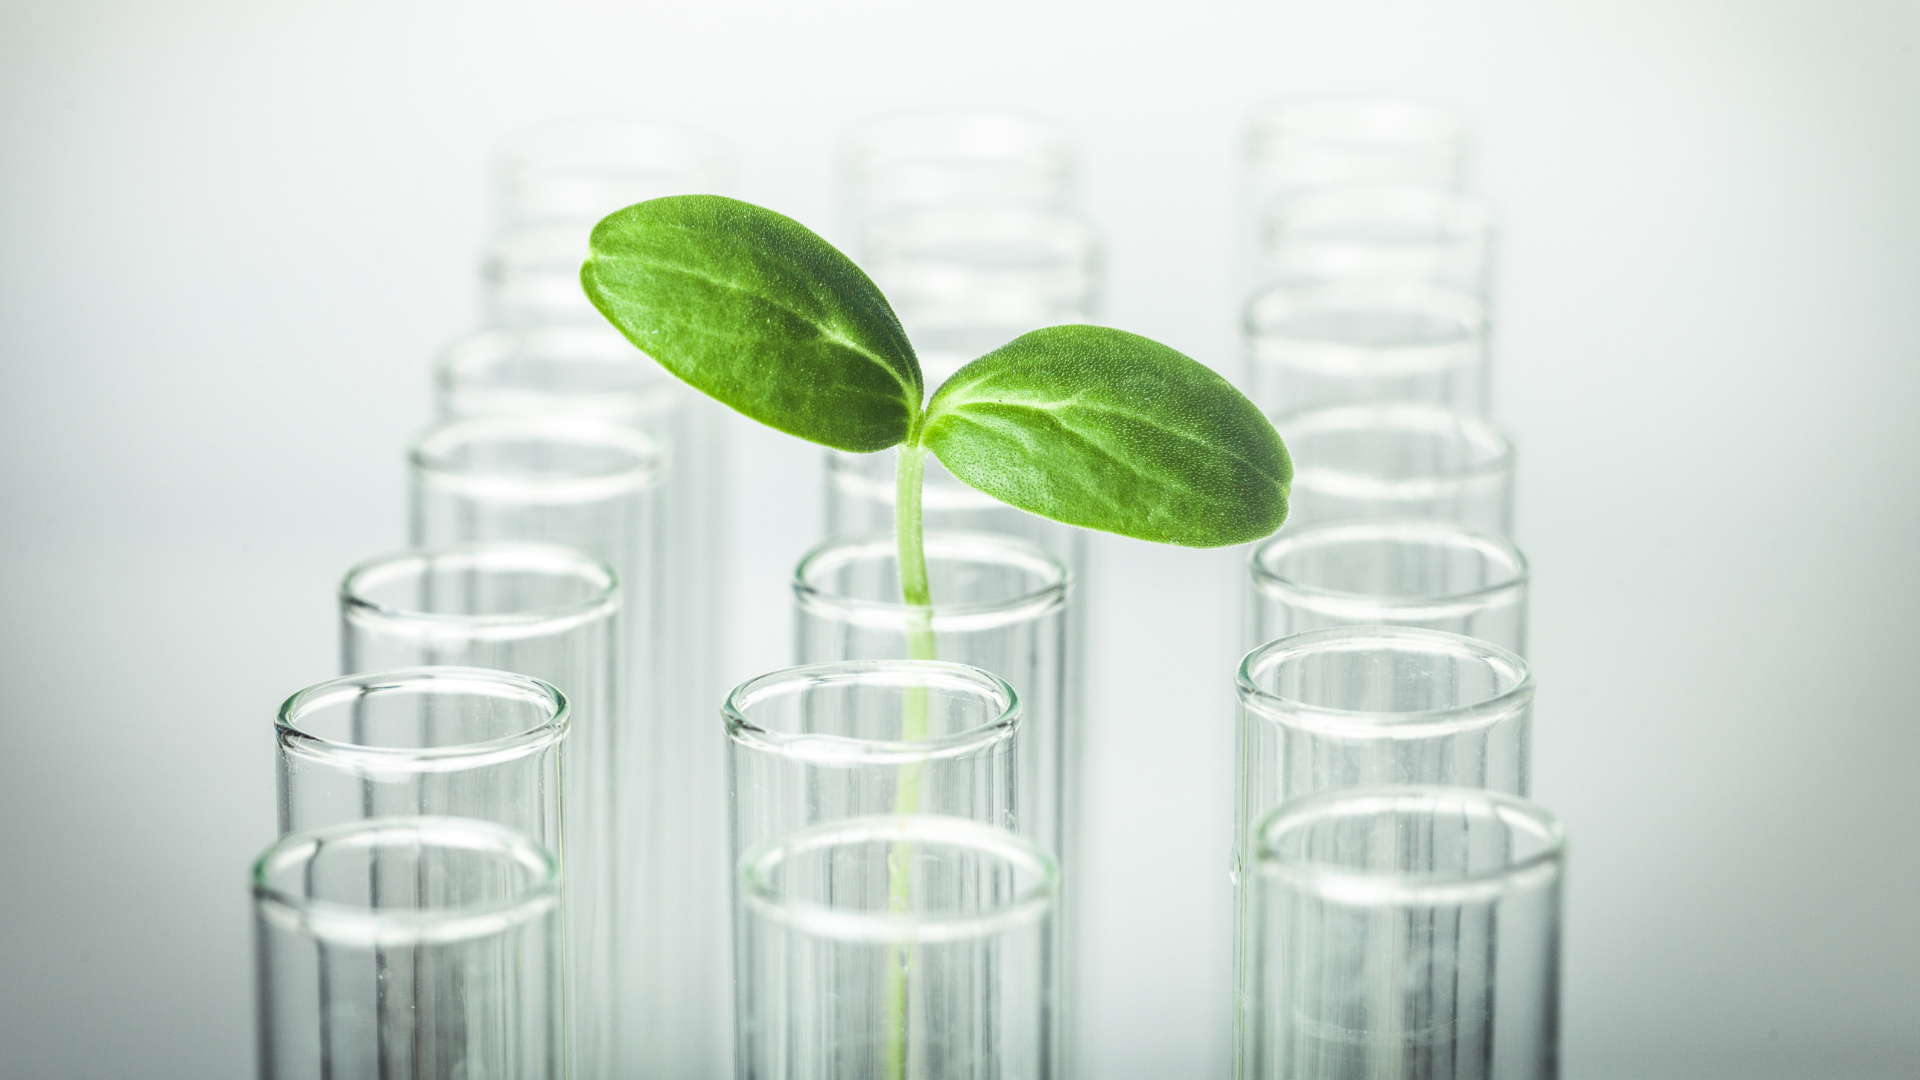 Plant shoot in test tube